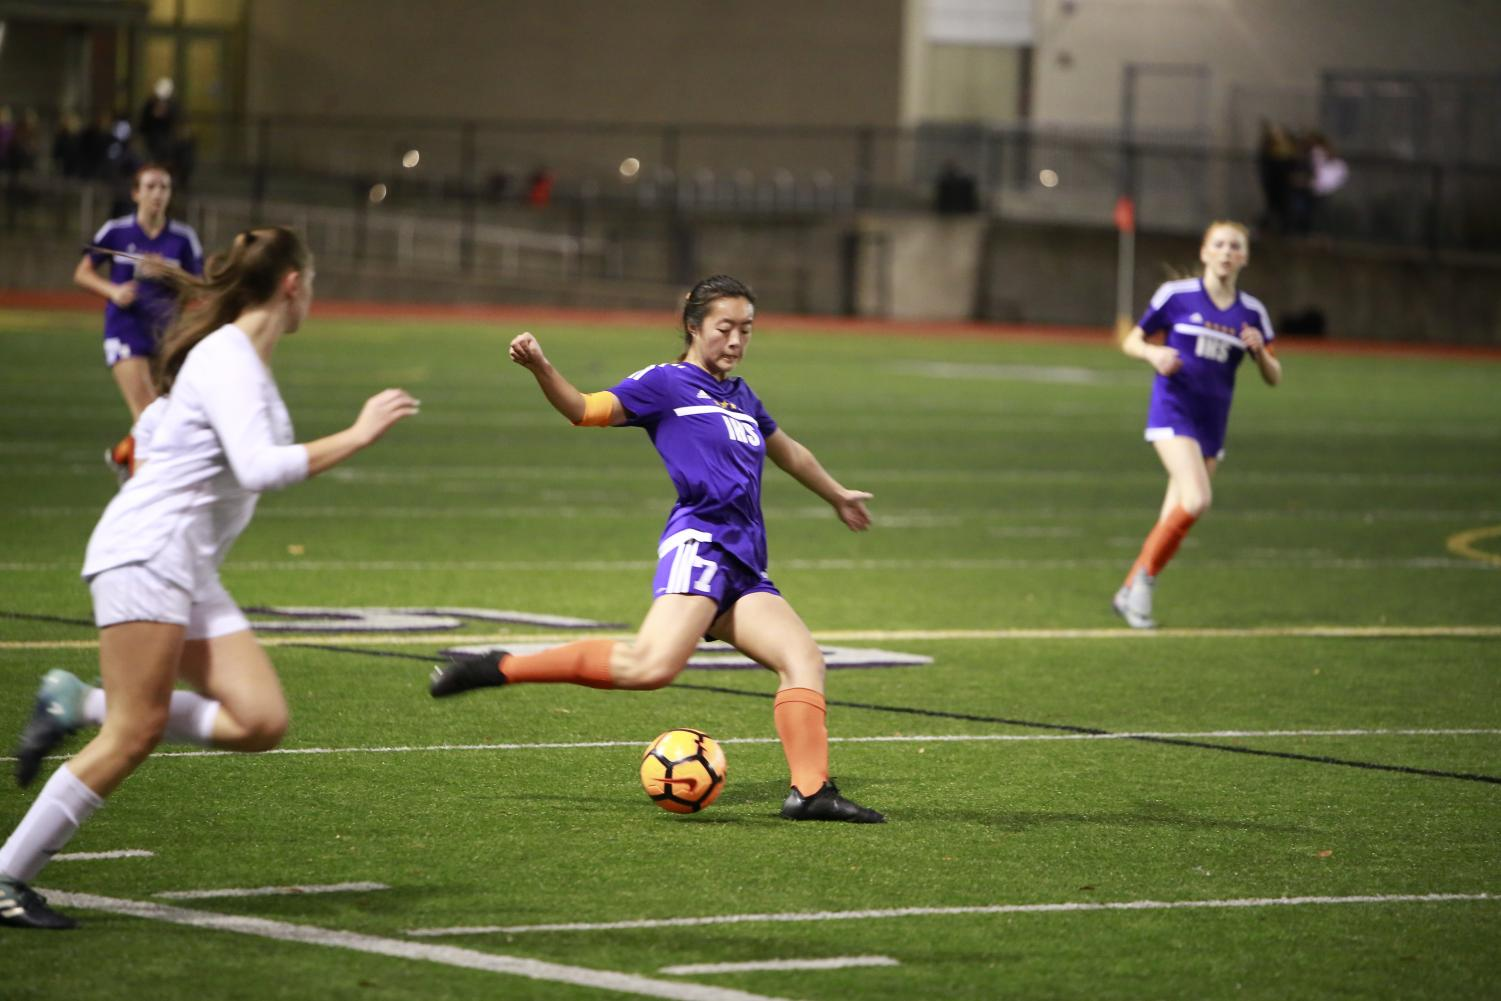 SKILLFUL PLAY: Senior Sarah Kim attacks the ball. The Issaquah Girls' Varsity Soccer Team keeps the ball close to the ground, plays aggressively, and works well as a unit.